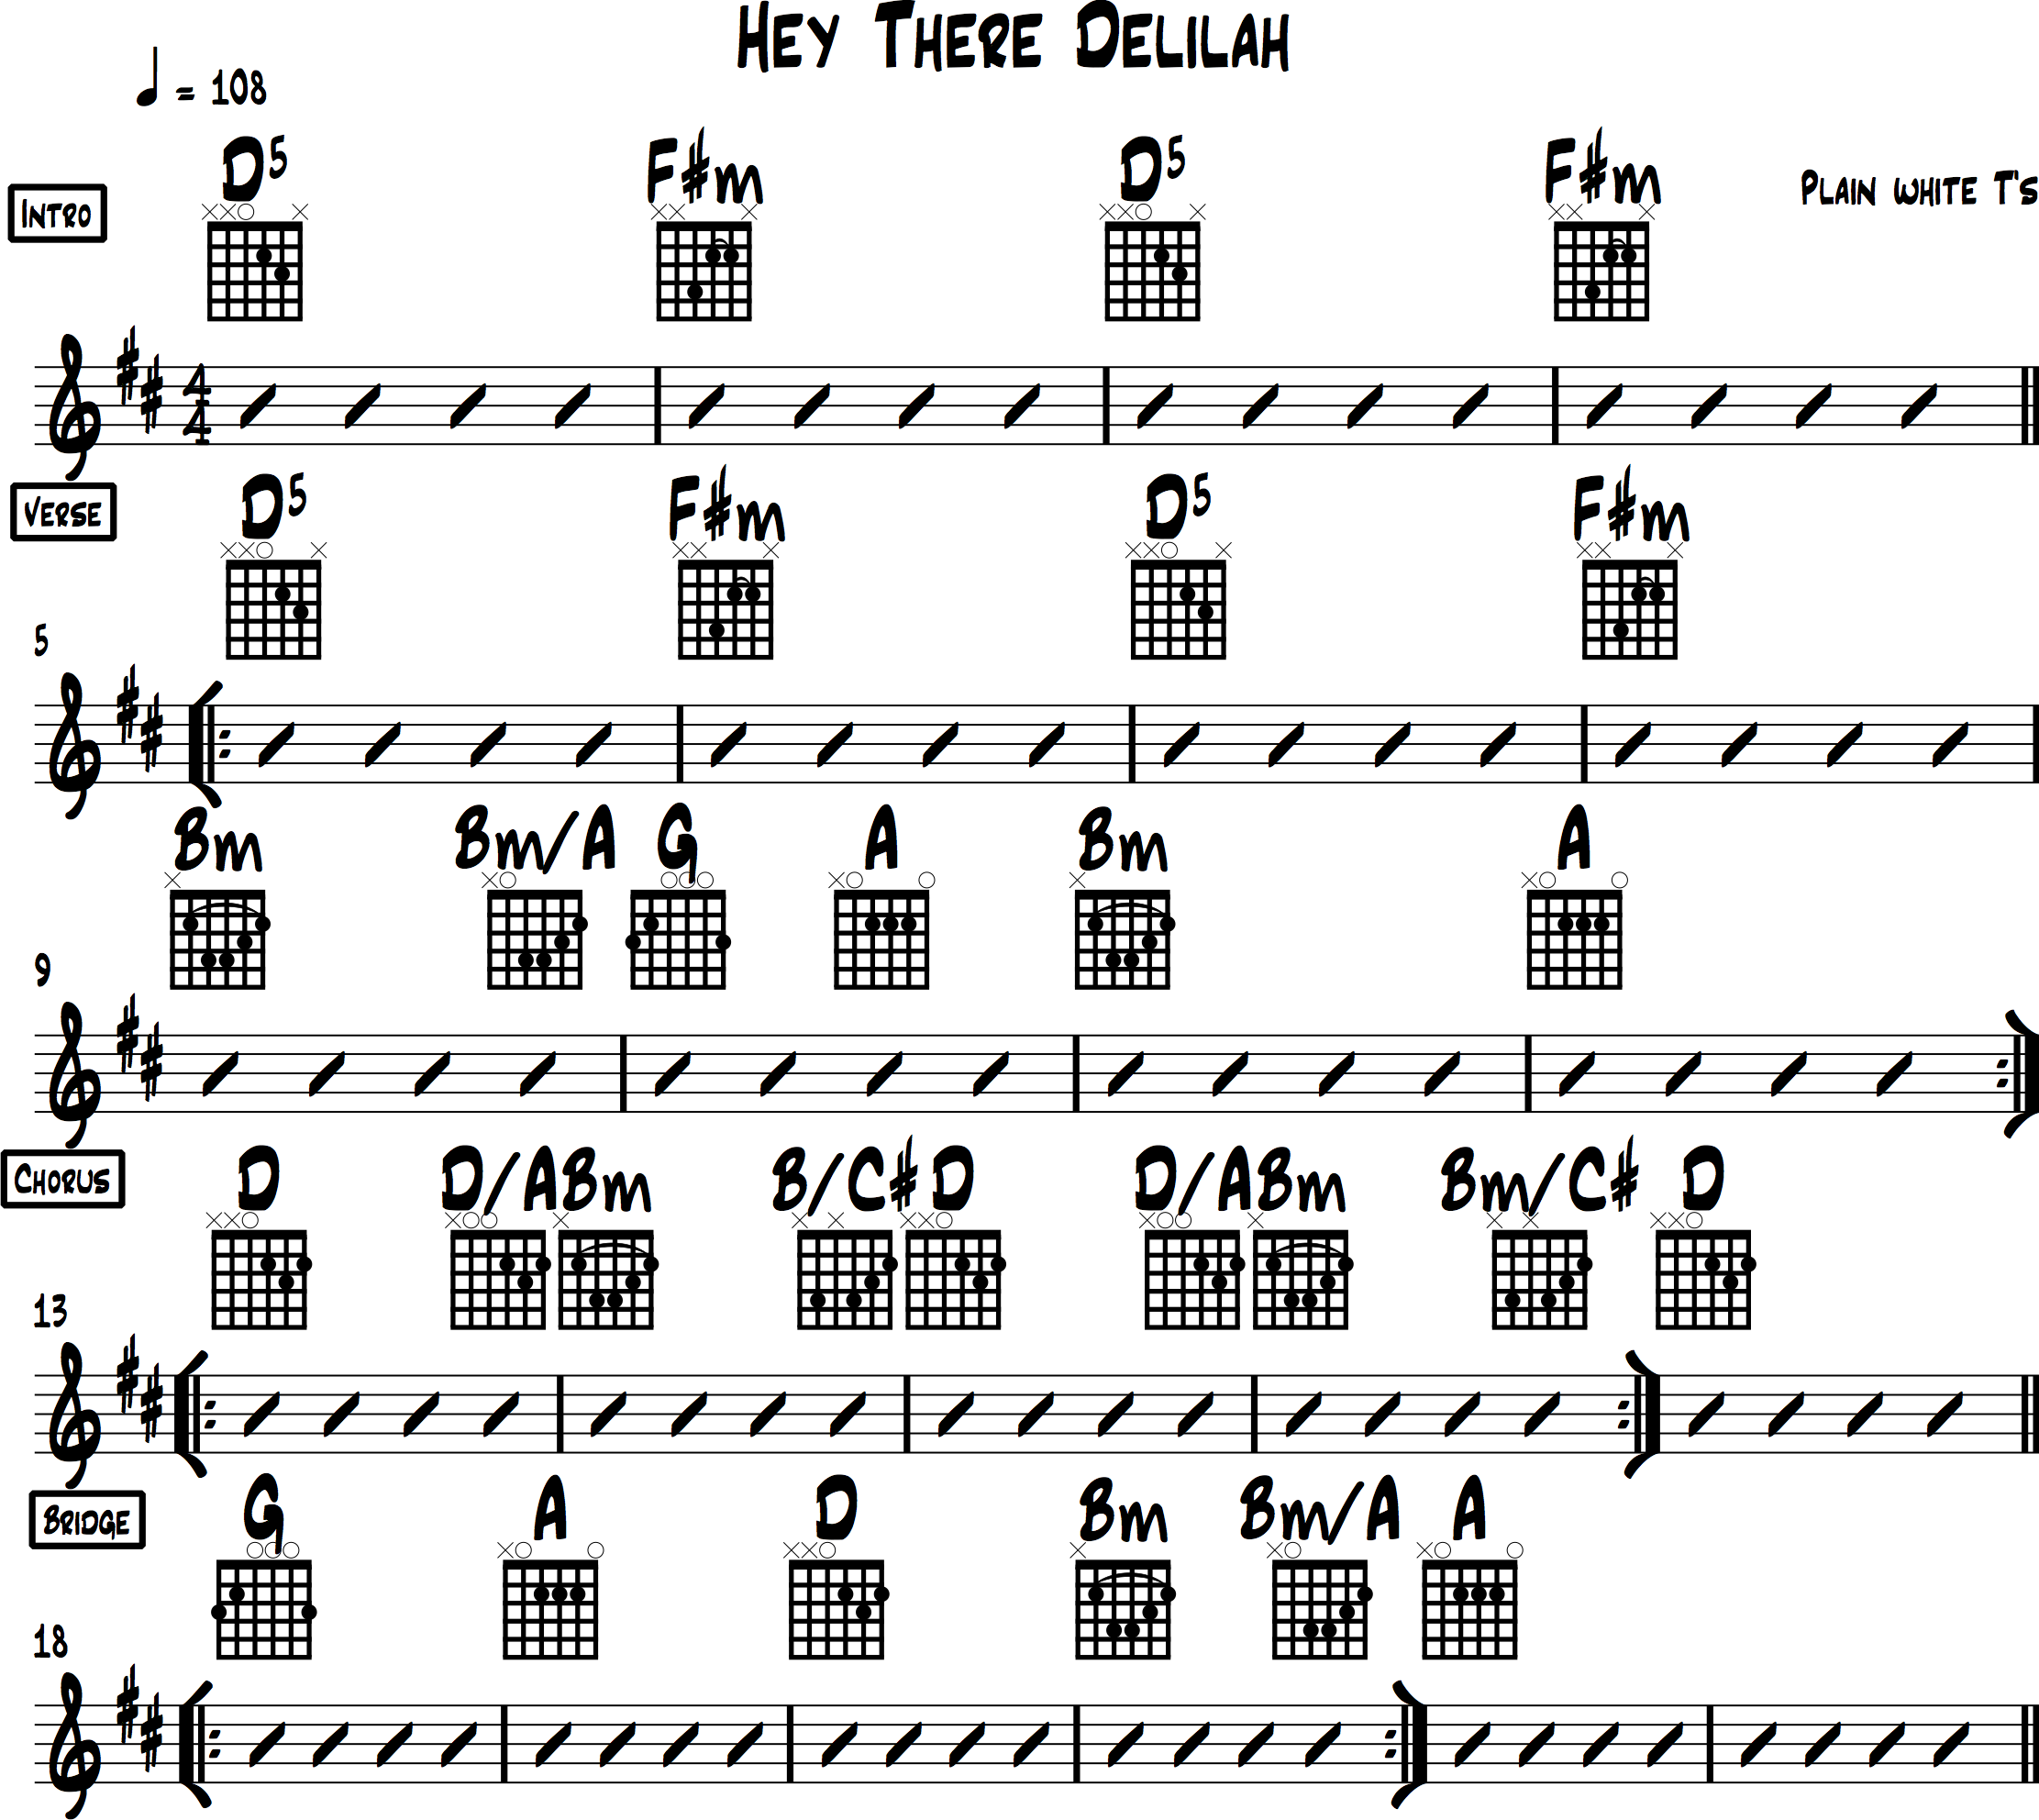 Hey There Delilah guitar arrangement